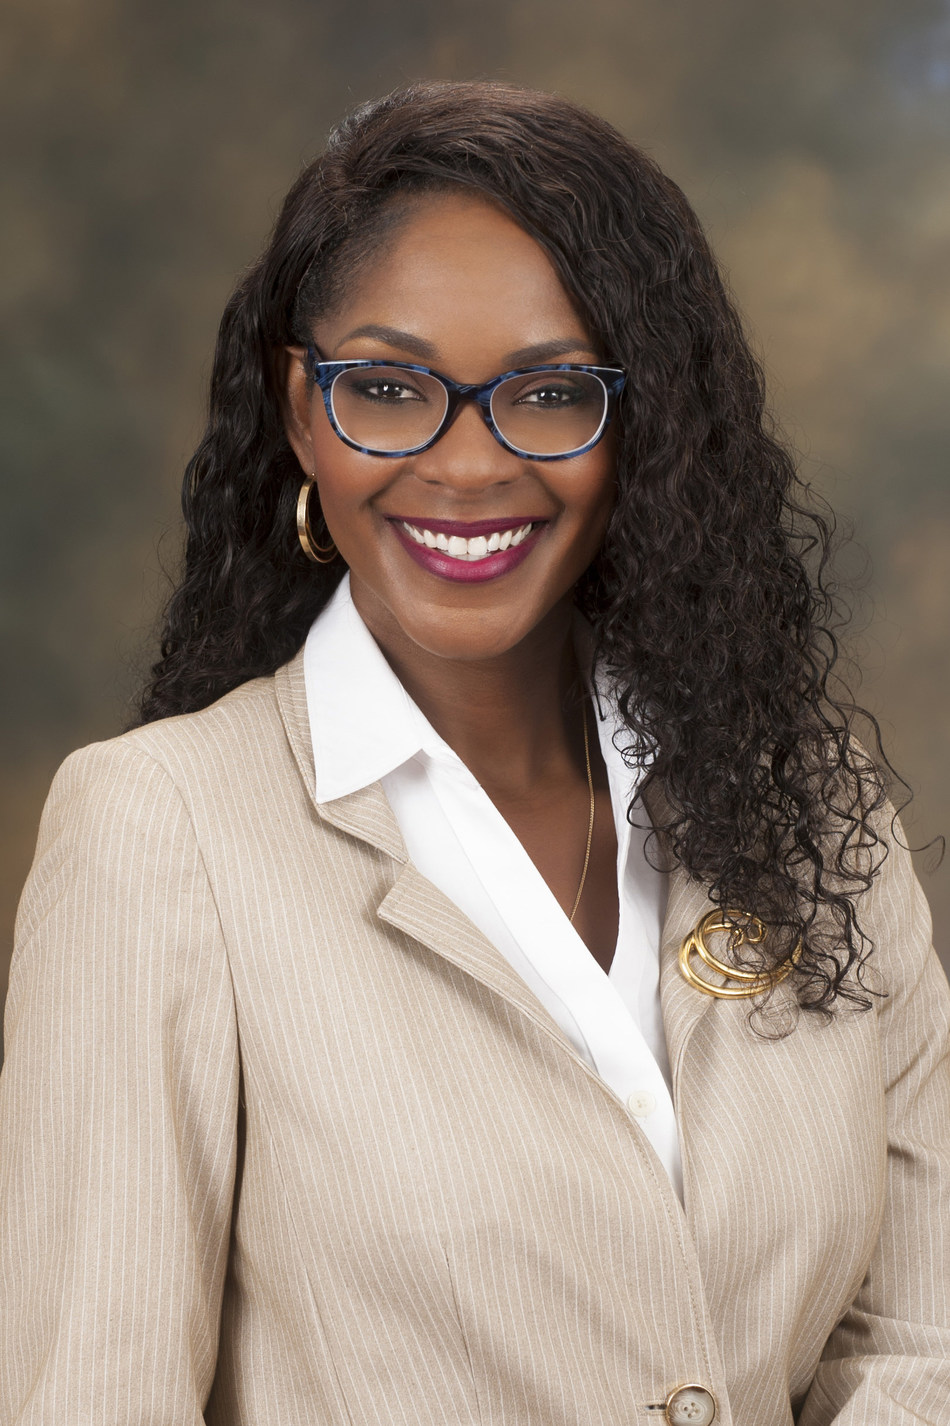 Heritage Health Solutions, Inc. appoints Ms. Ericka Dunlap to Board of Directors